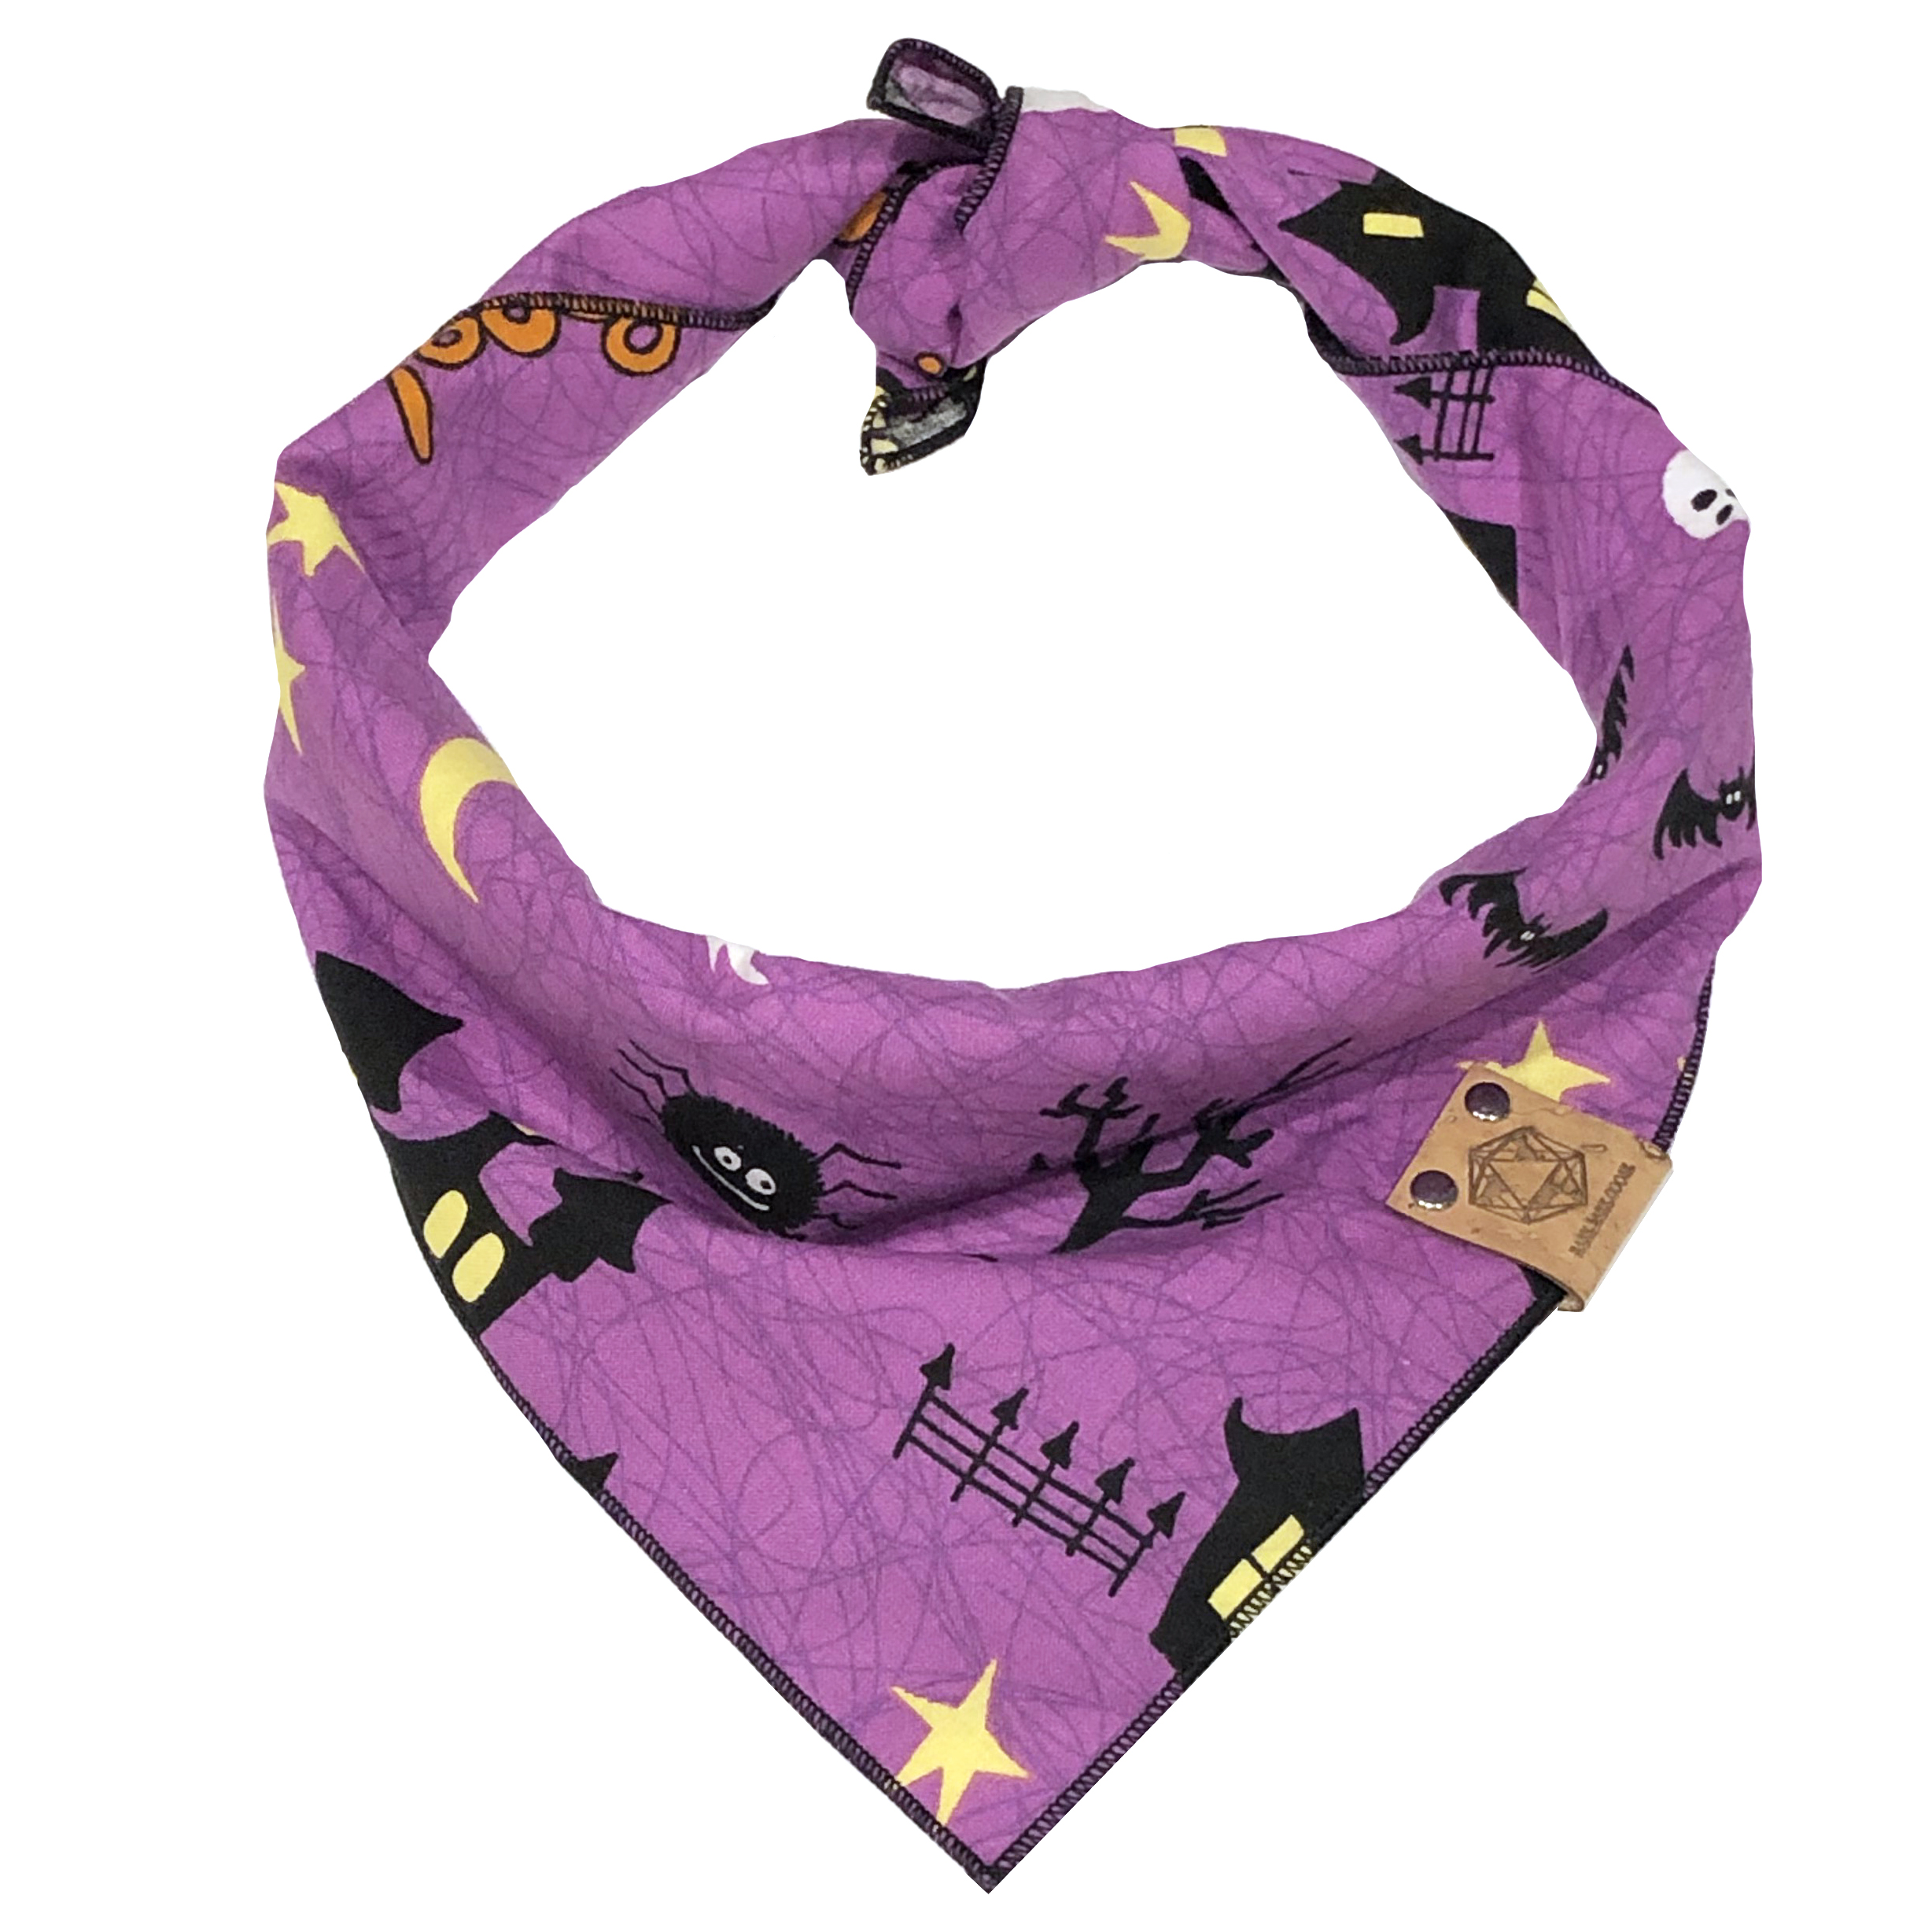 purple haunted houses dog bandana for halloween.jpg